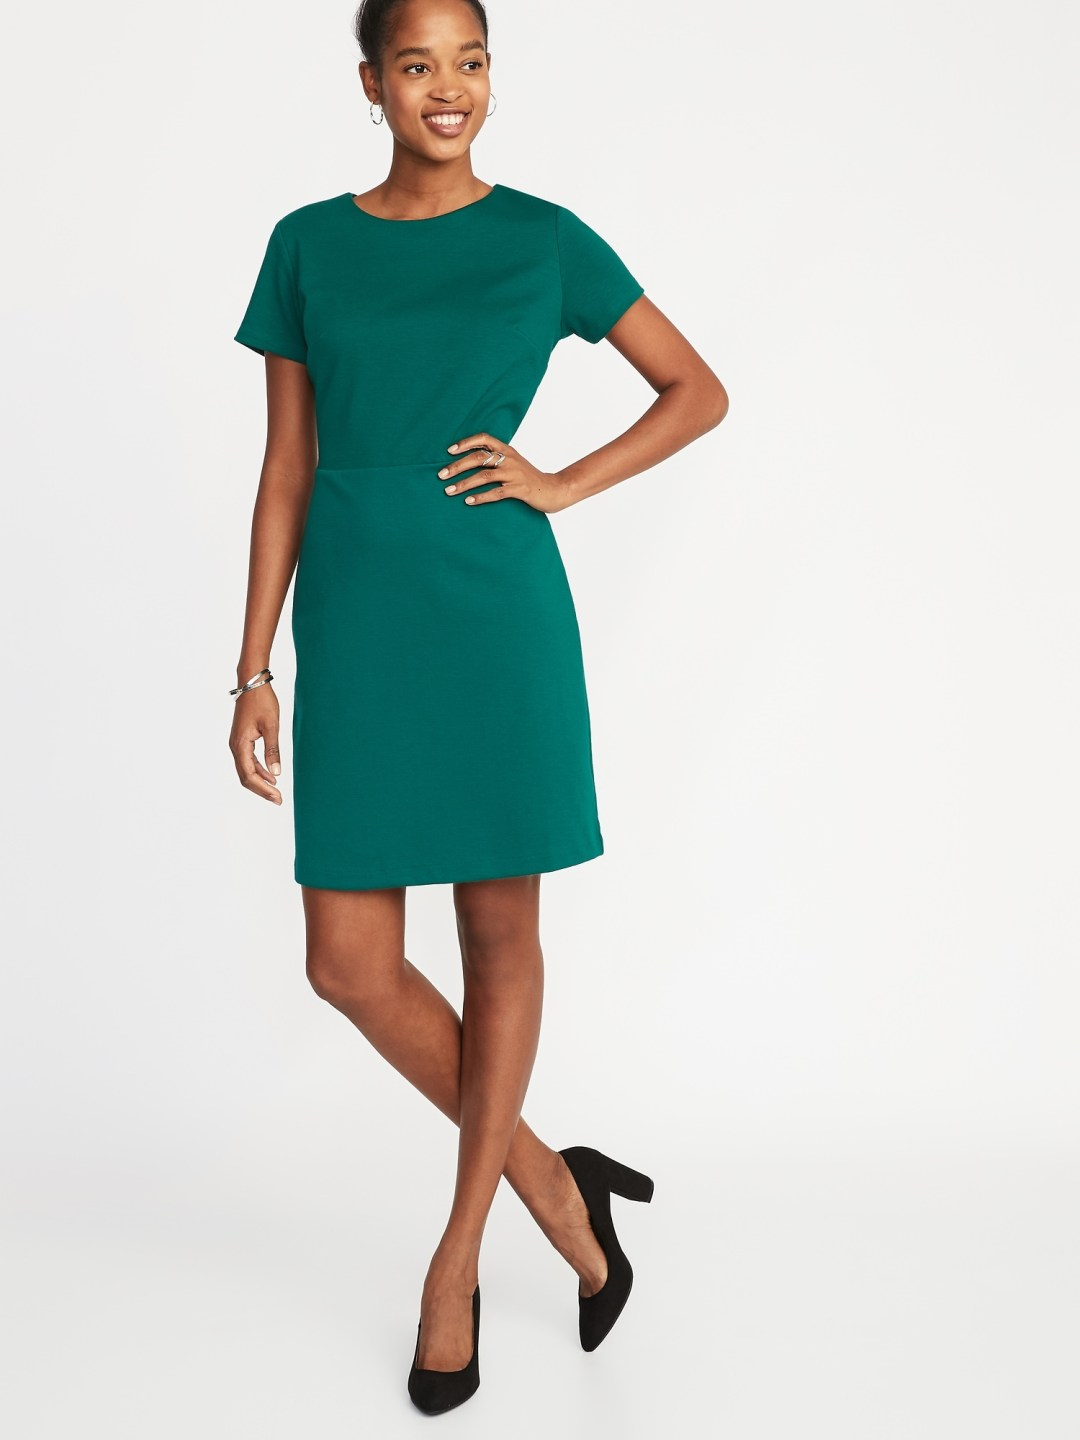 Ponte knit sheath dress from Old Navy